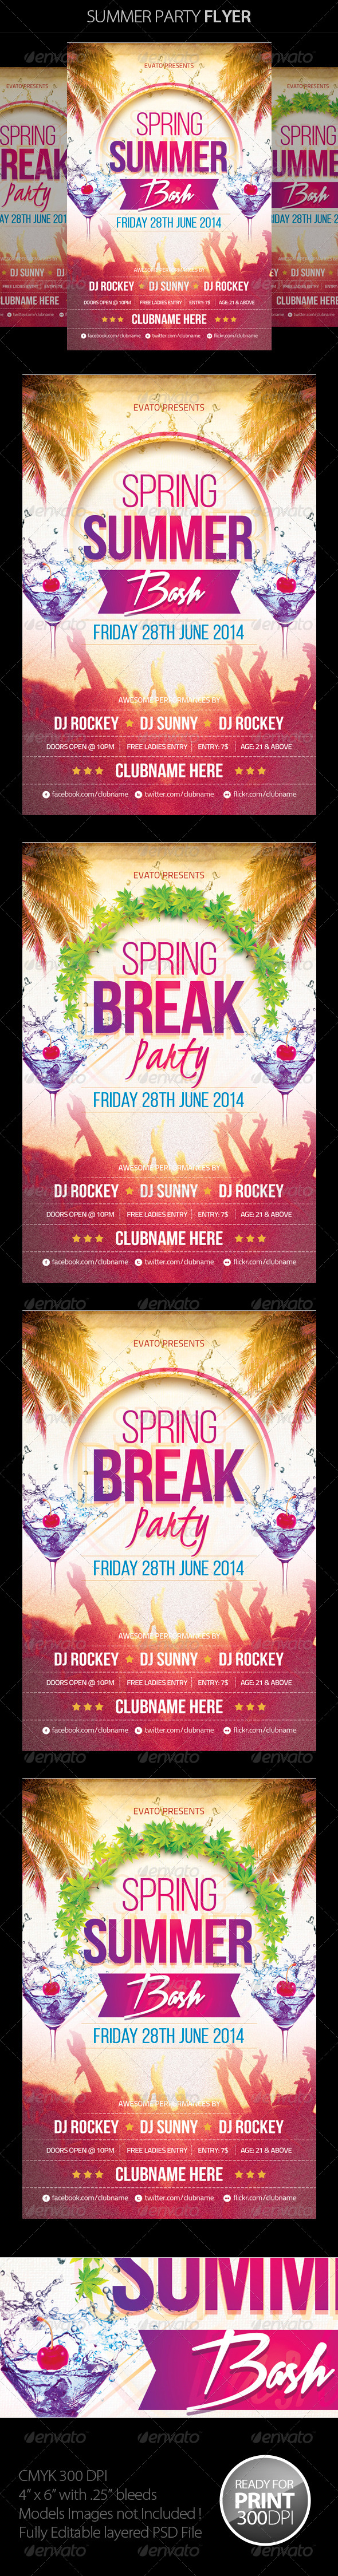 Summer / Spring Party Flyer